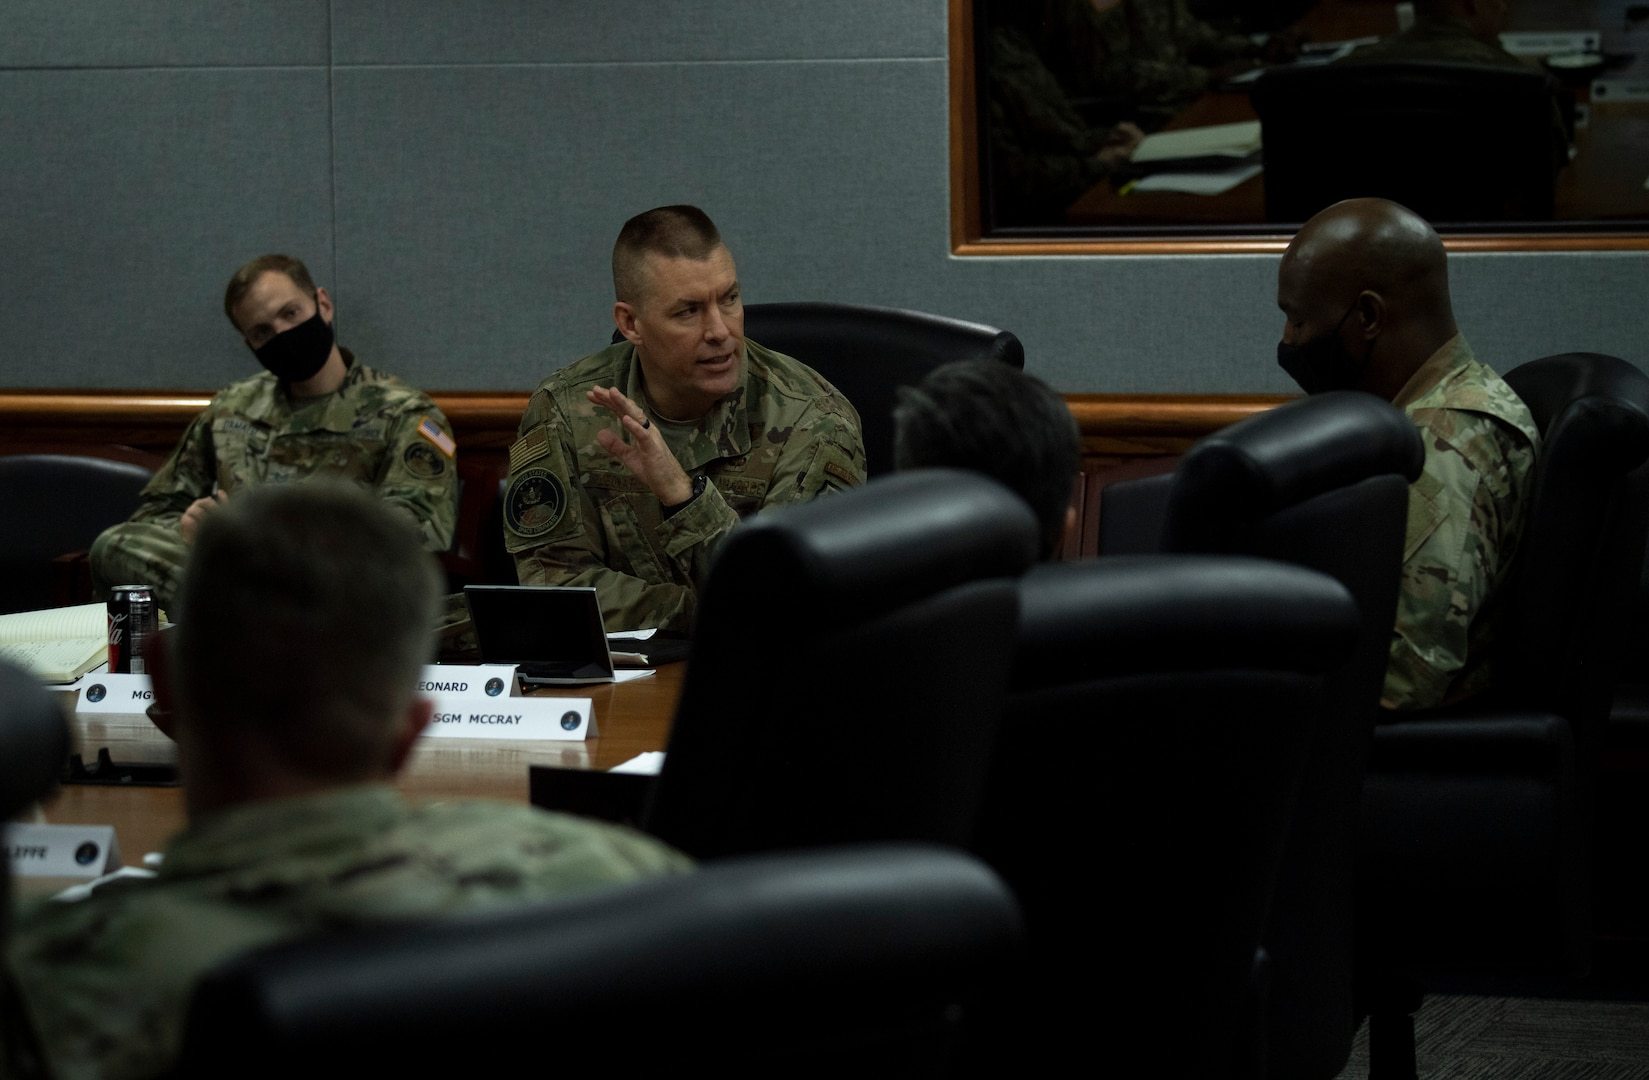 U.S. Air Force Brig. Gen. Brook Leonard, U.S. Space Command chief of staff, gives his thoughts on leadership Dec. 9 at Peterson Air Force Base, Colorado, during an enlisted professionalization day for NCOs from units across USSPACECOM and its subordinate units.